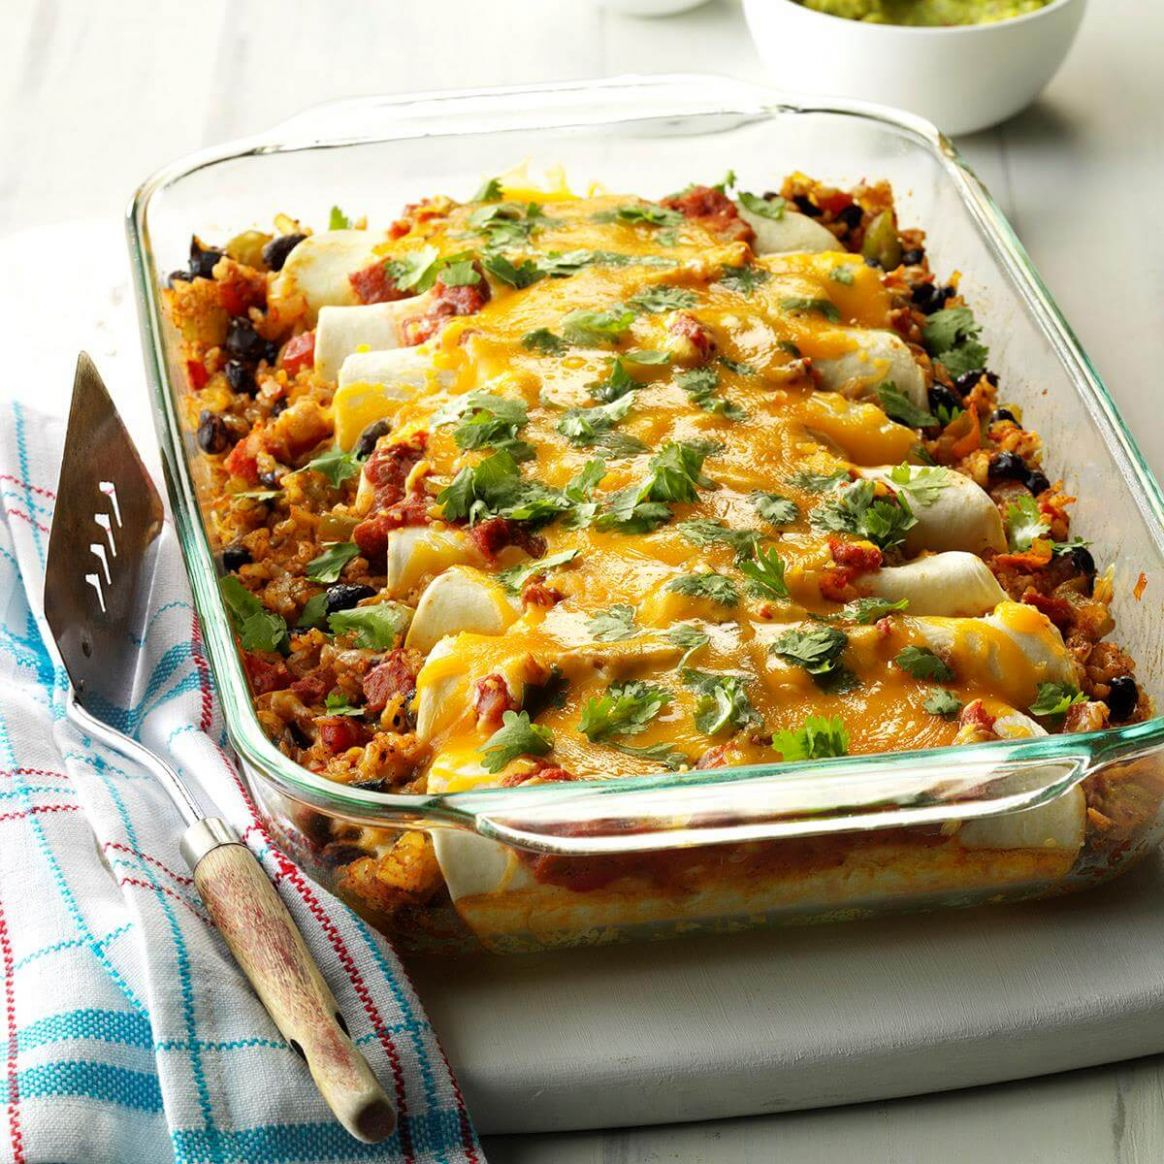 10 Dinner Recipes for Weight Loss   Taste of Home - Weight Loss Tasty Recipes